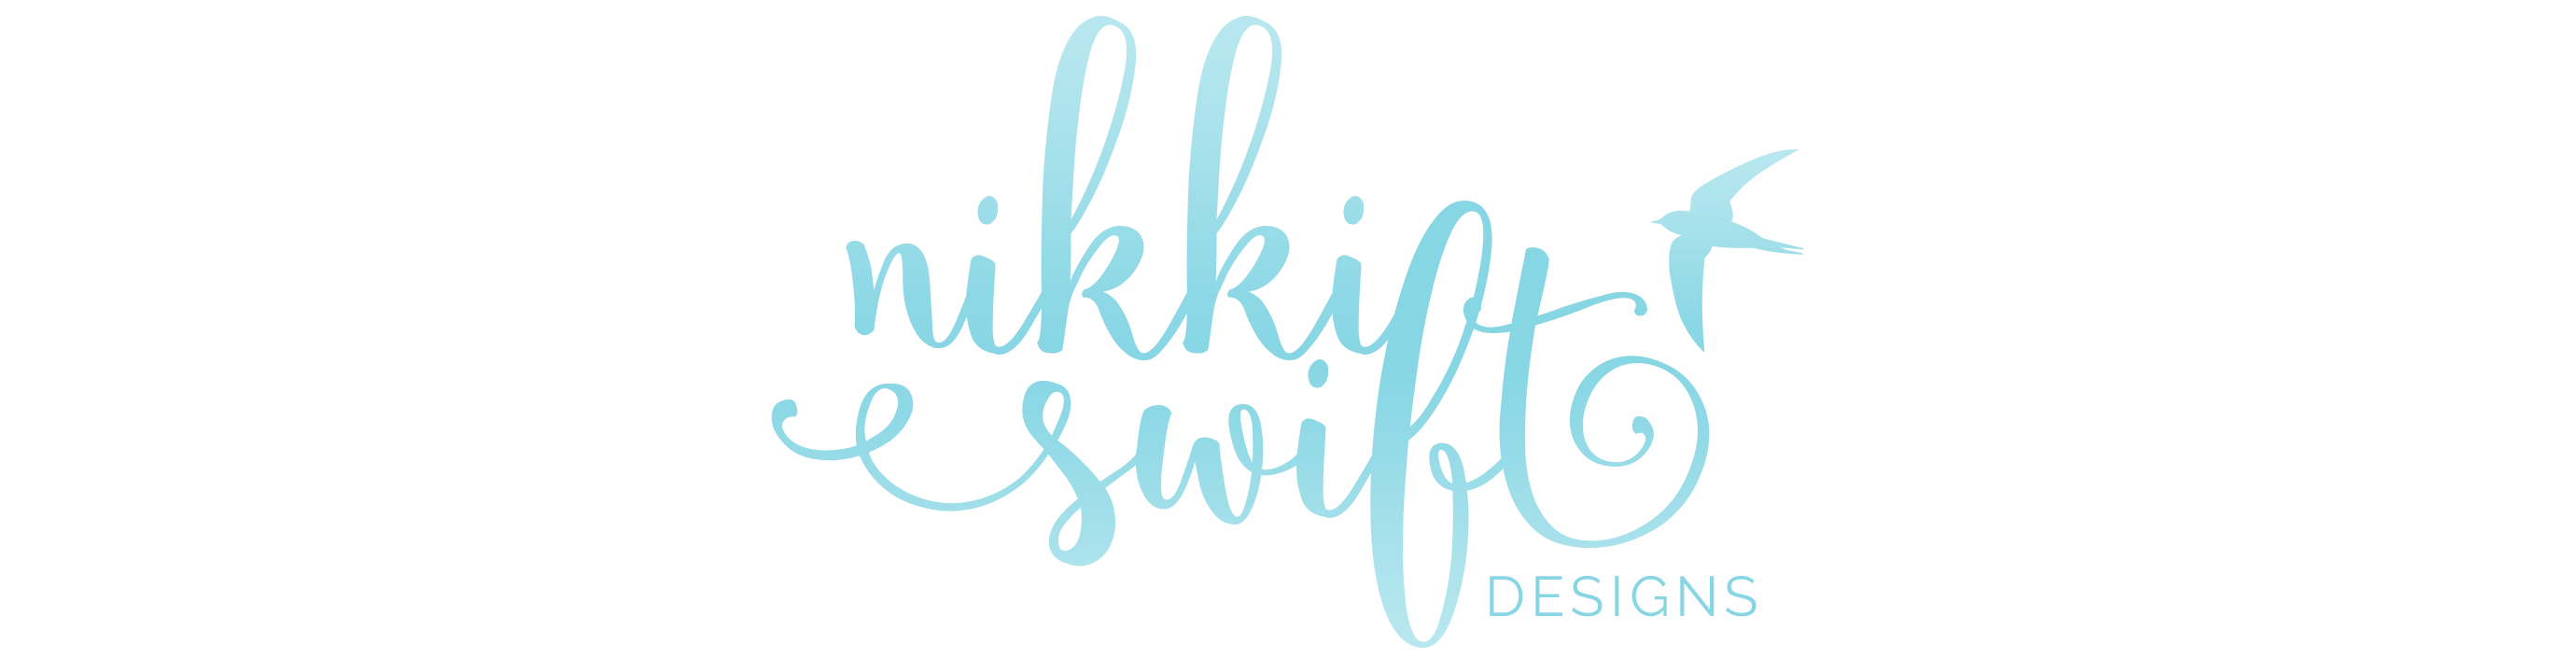 Nikki Swift Designs – Wedding Stationery, Invitations, Cards & Gifts